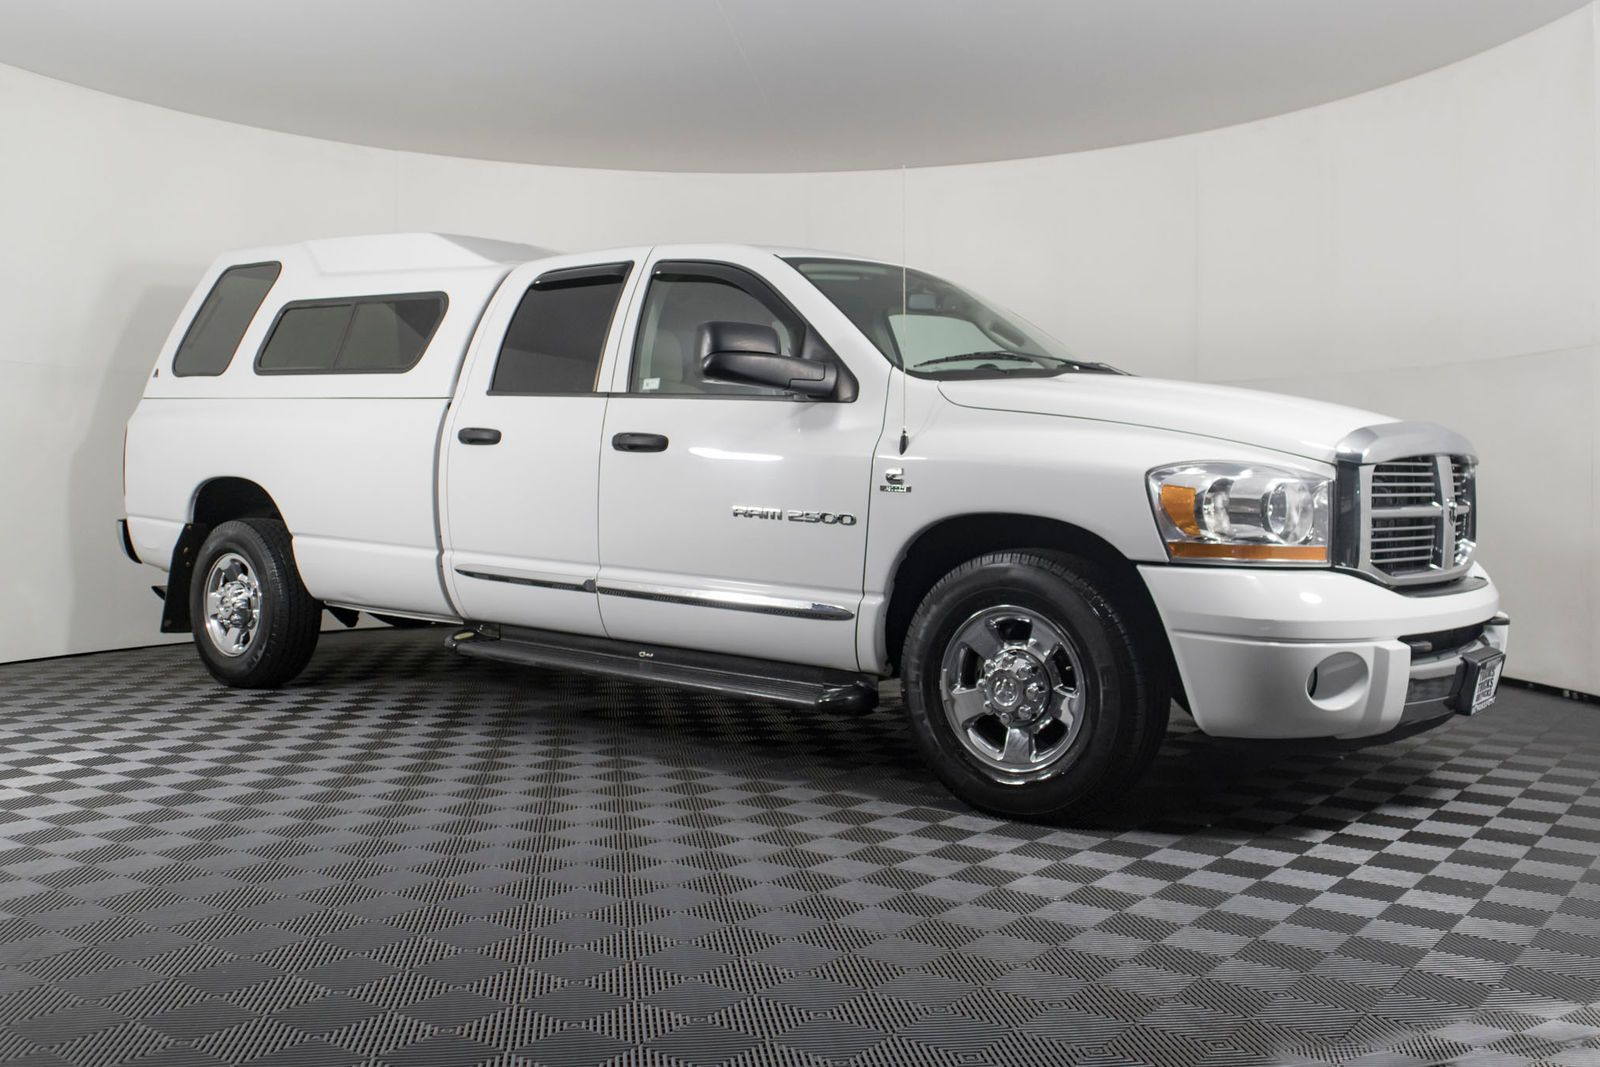 Used 2006 Dodge Ram 2500 Laramie RWD Diesel Truck For Sale